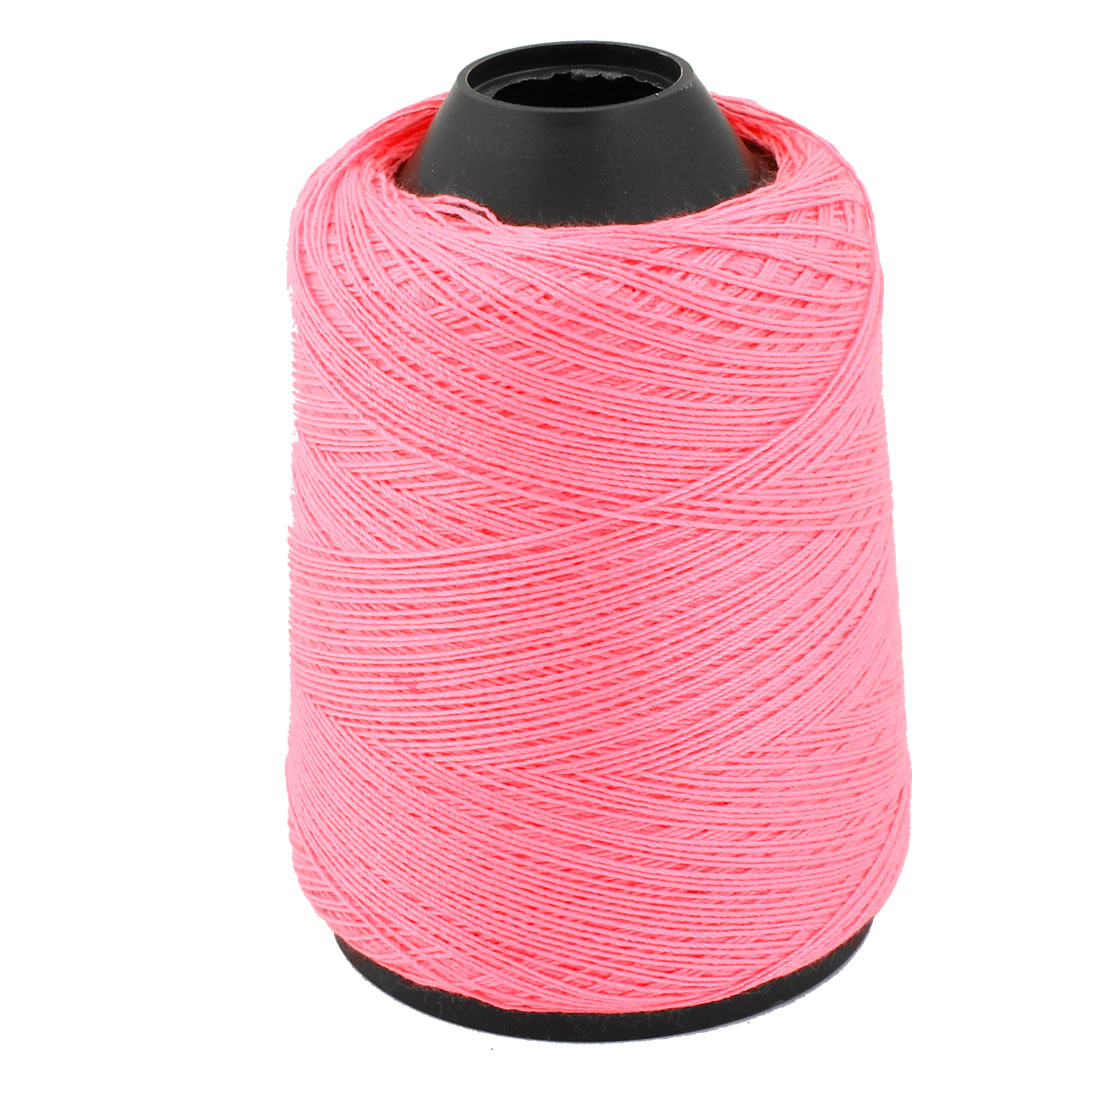 Household Rose Pink Cotton Tailoring Stitching Sewing Thread Reel